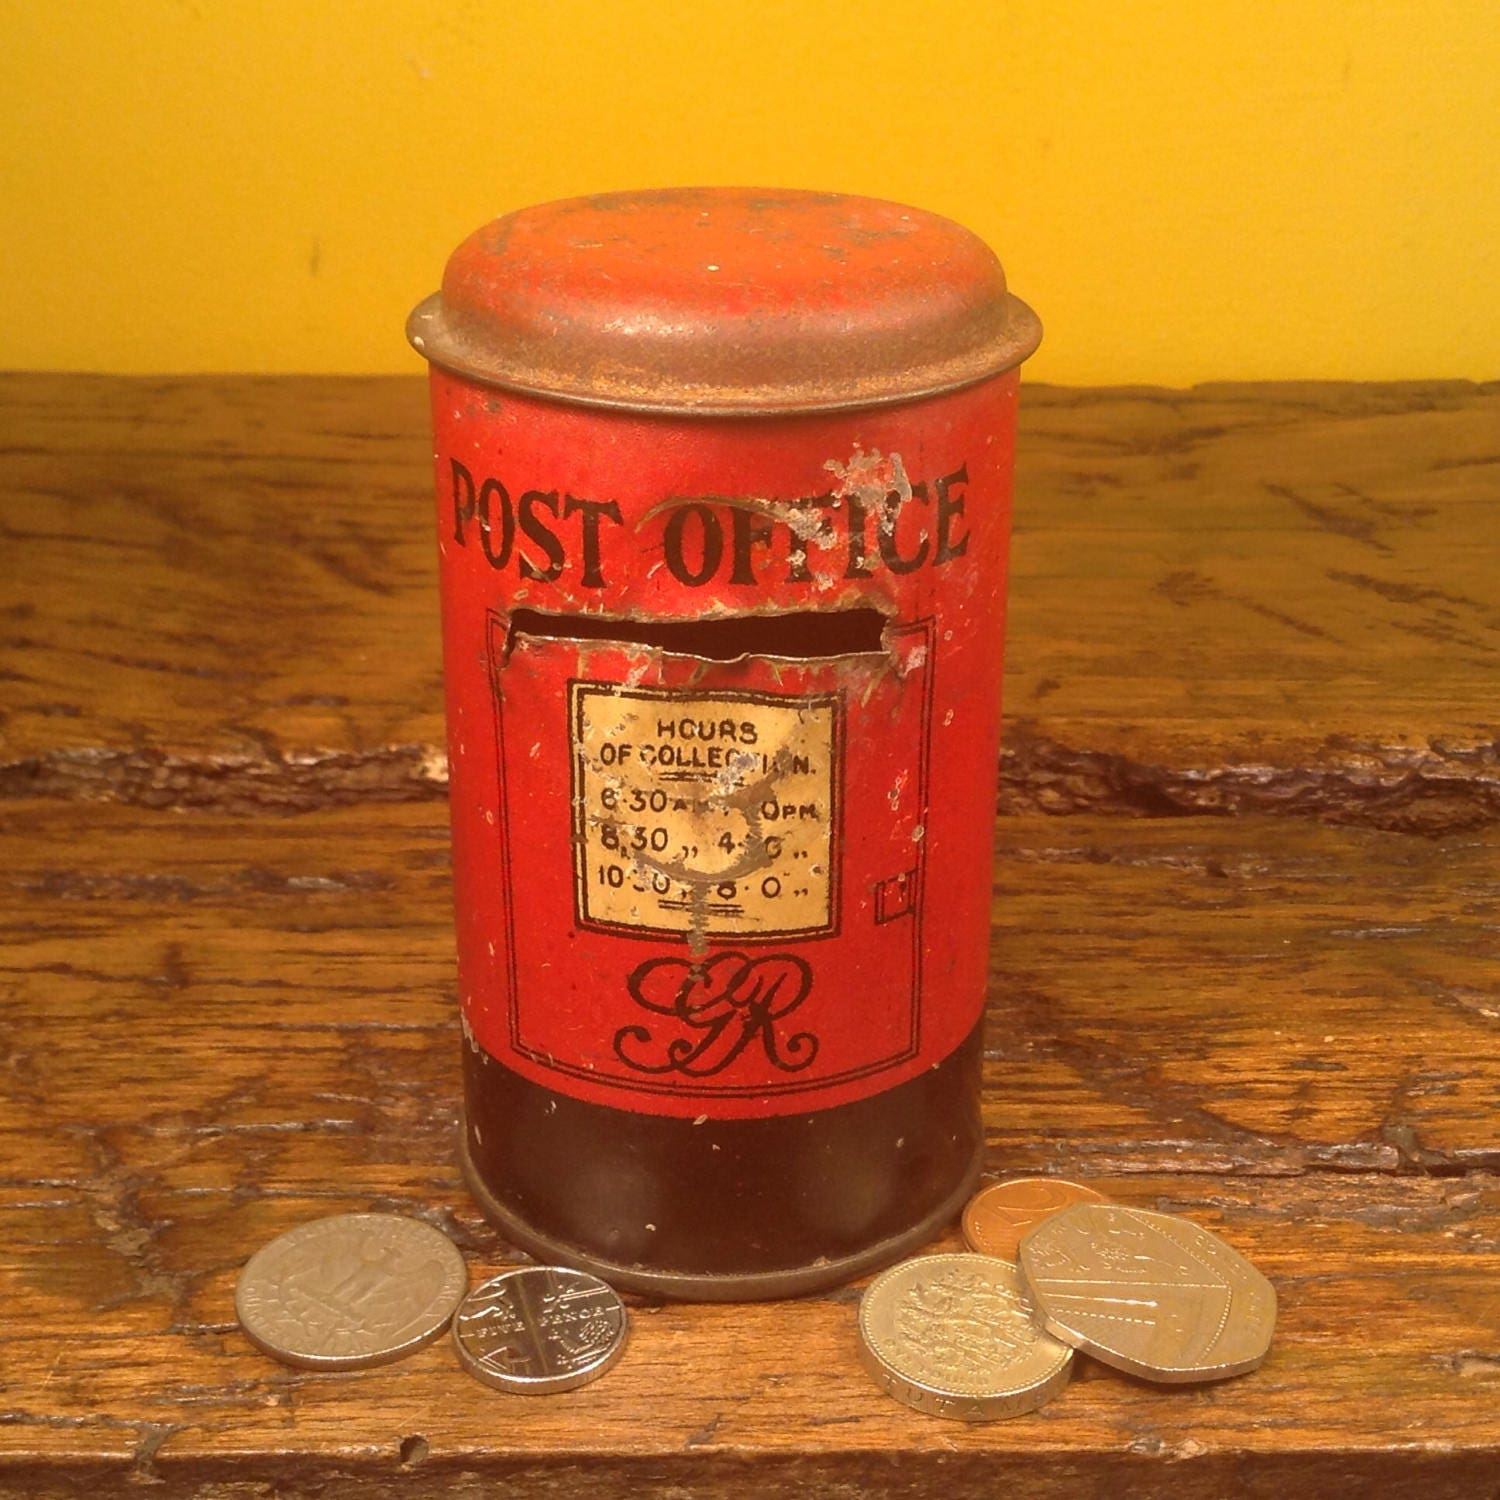 Vintage red Royal Mail post box money bank. Post office box British. Red with alphabet.